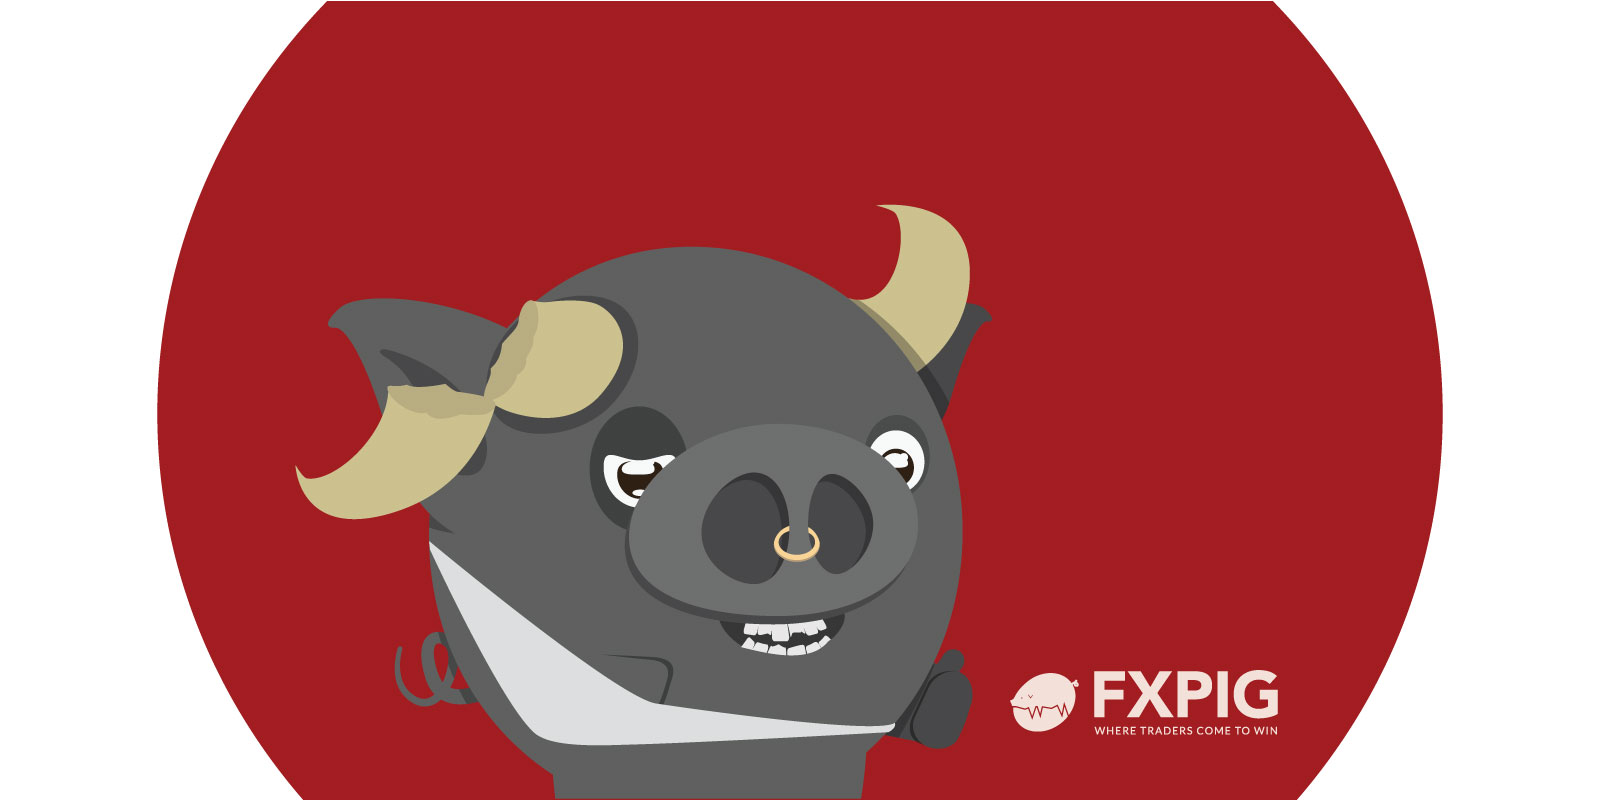 Bulls-and-Bears_forex_FXPIG- 03.04.2019